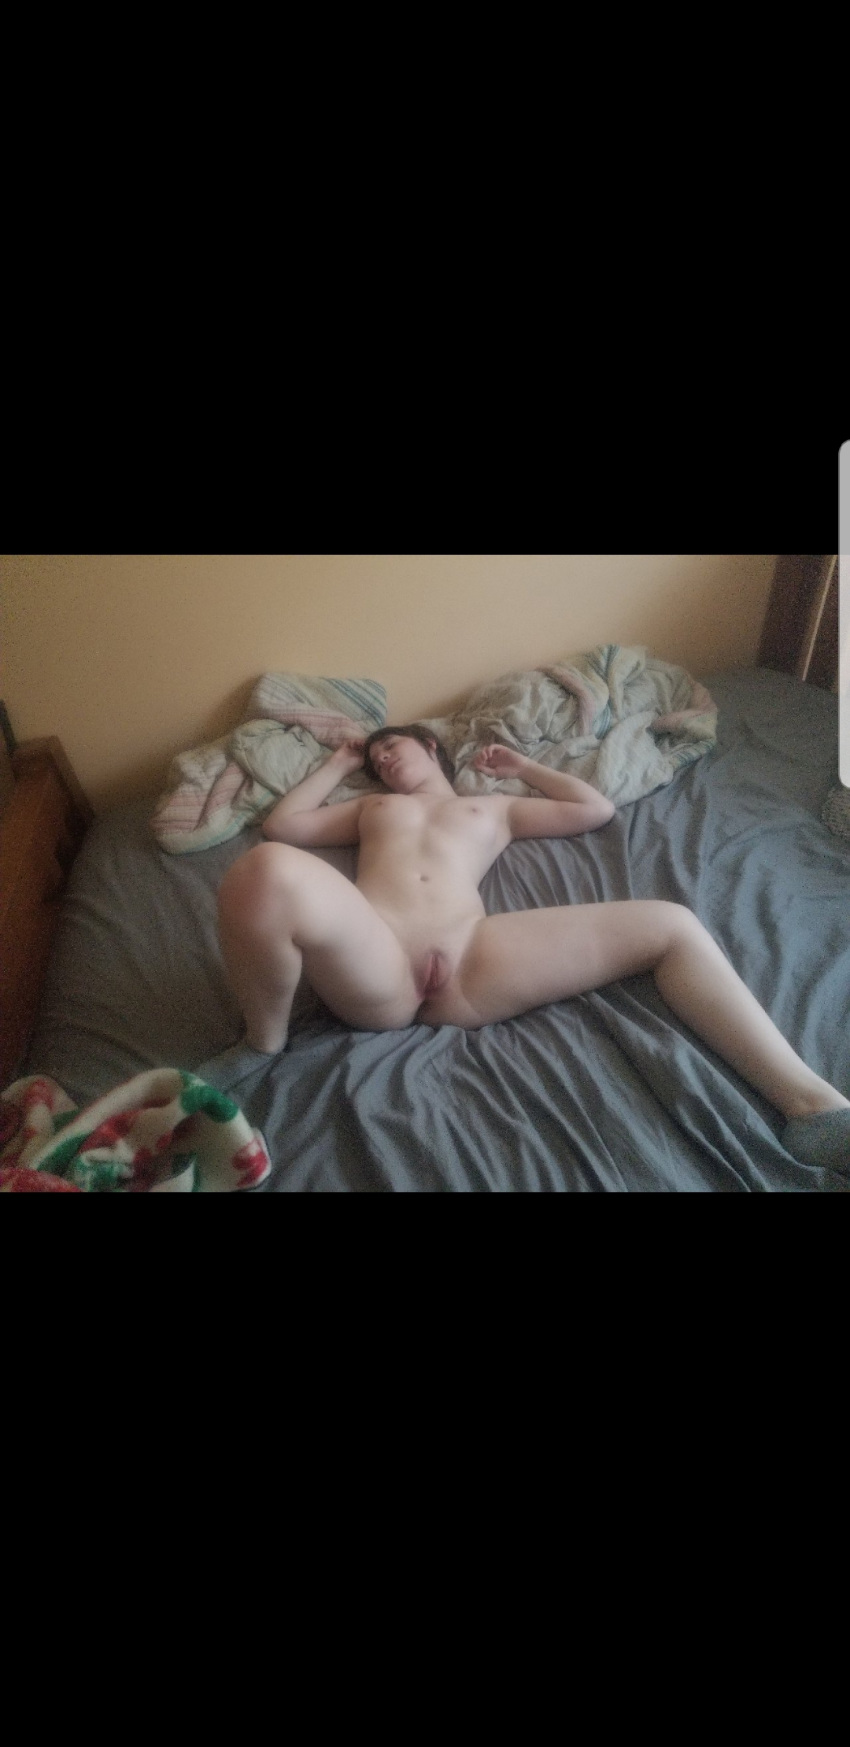 fucked_silly perky_breasts shaved_pussy thick_thighs